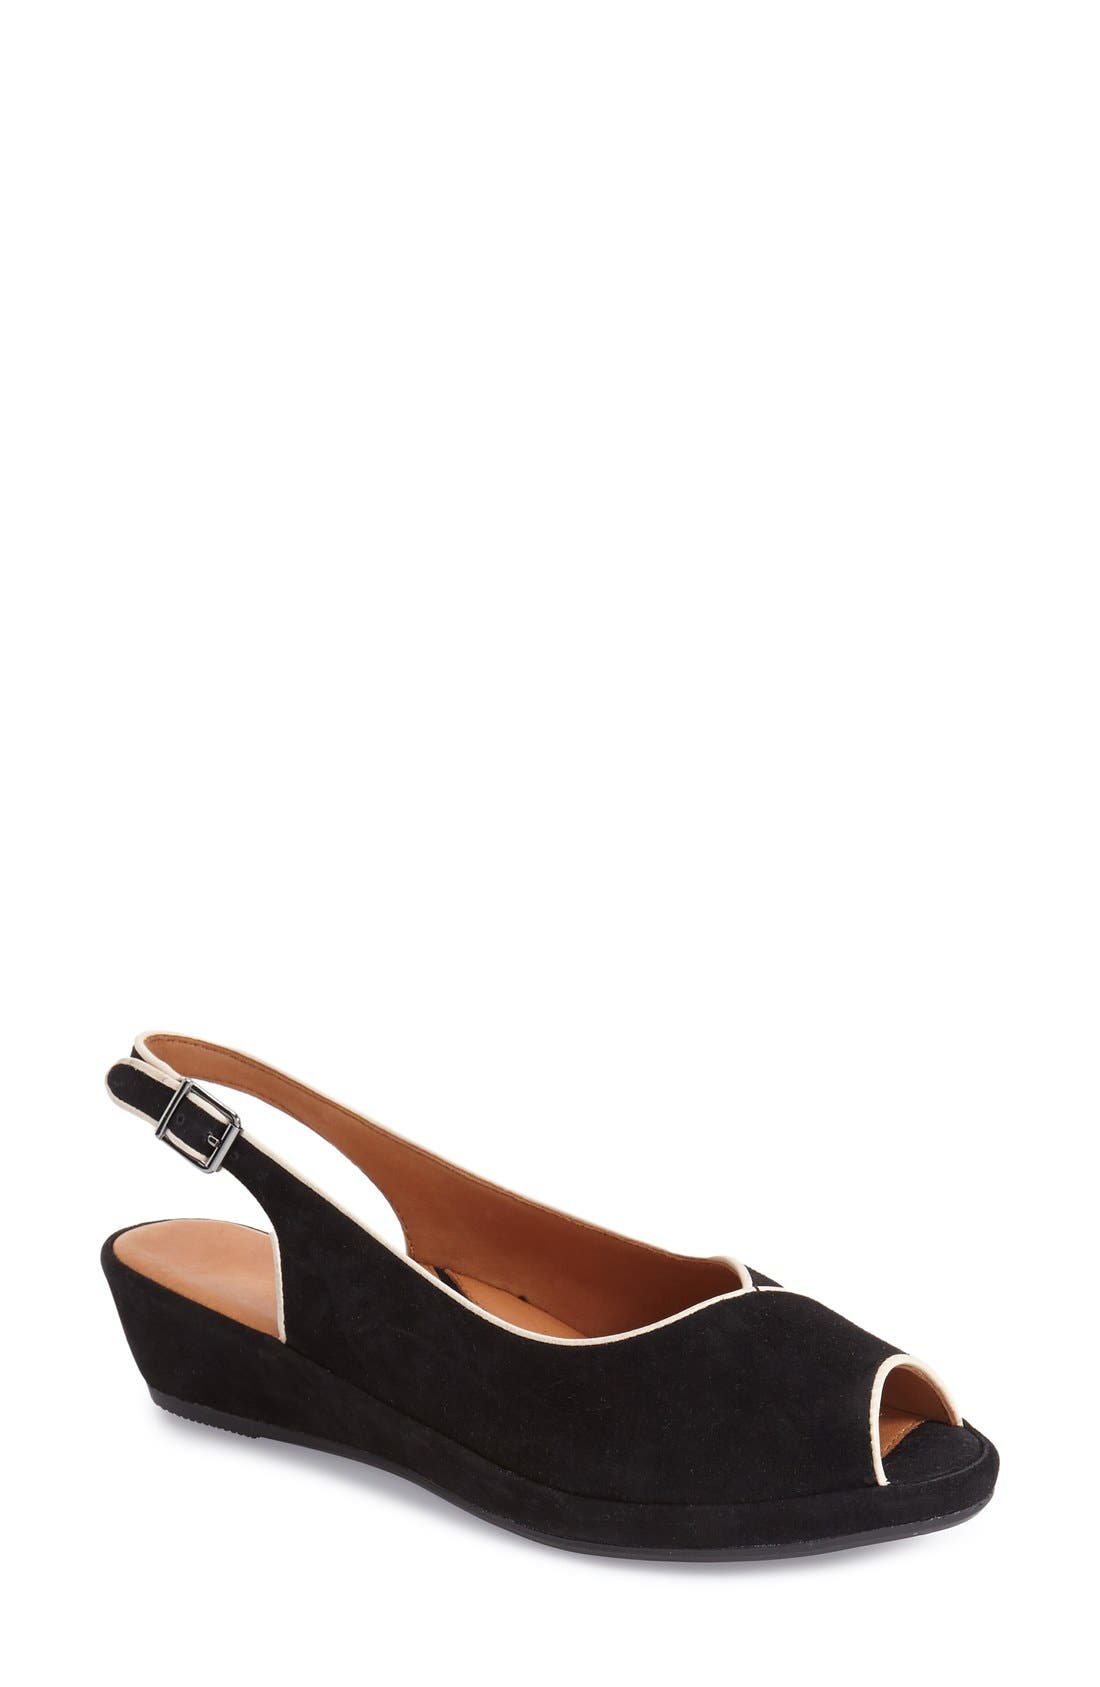 L'Amour des Pieds 'Breyer' Slingback Peep Toe Wedge (Women)